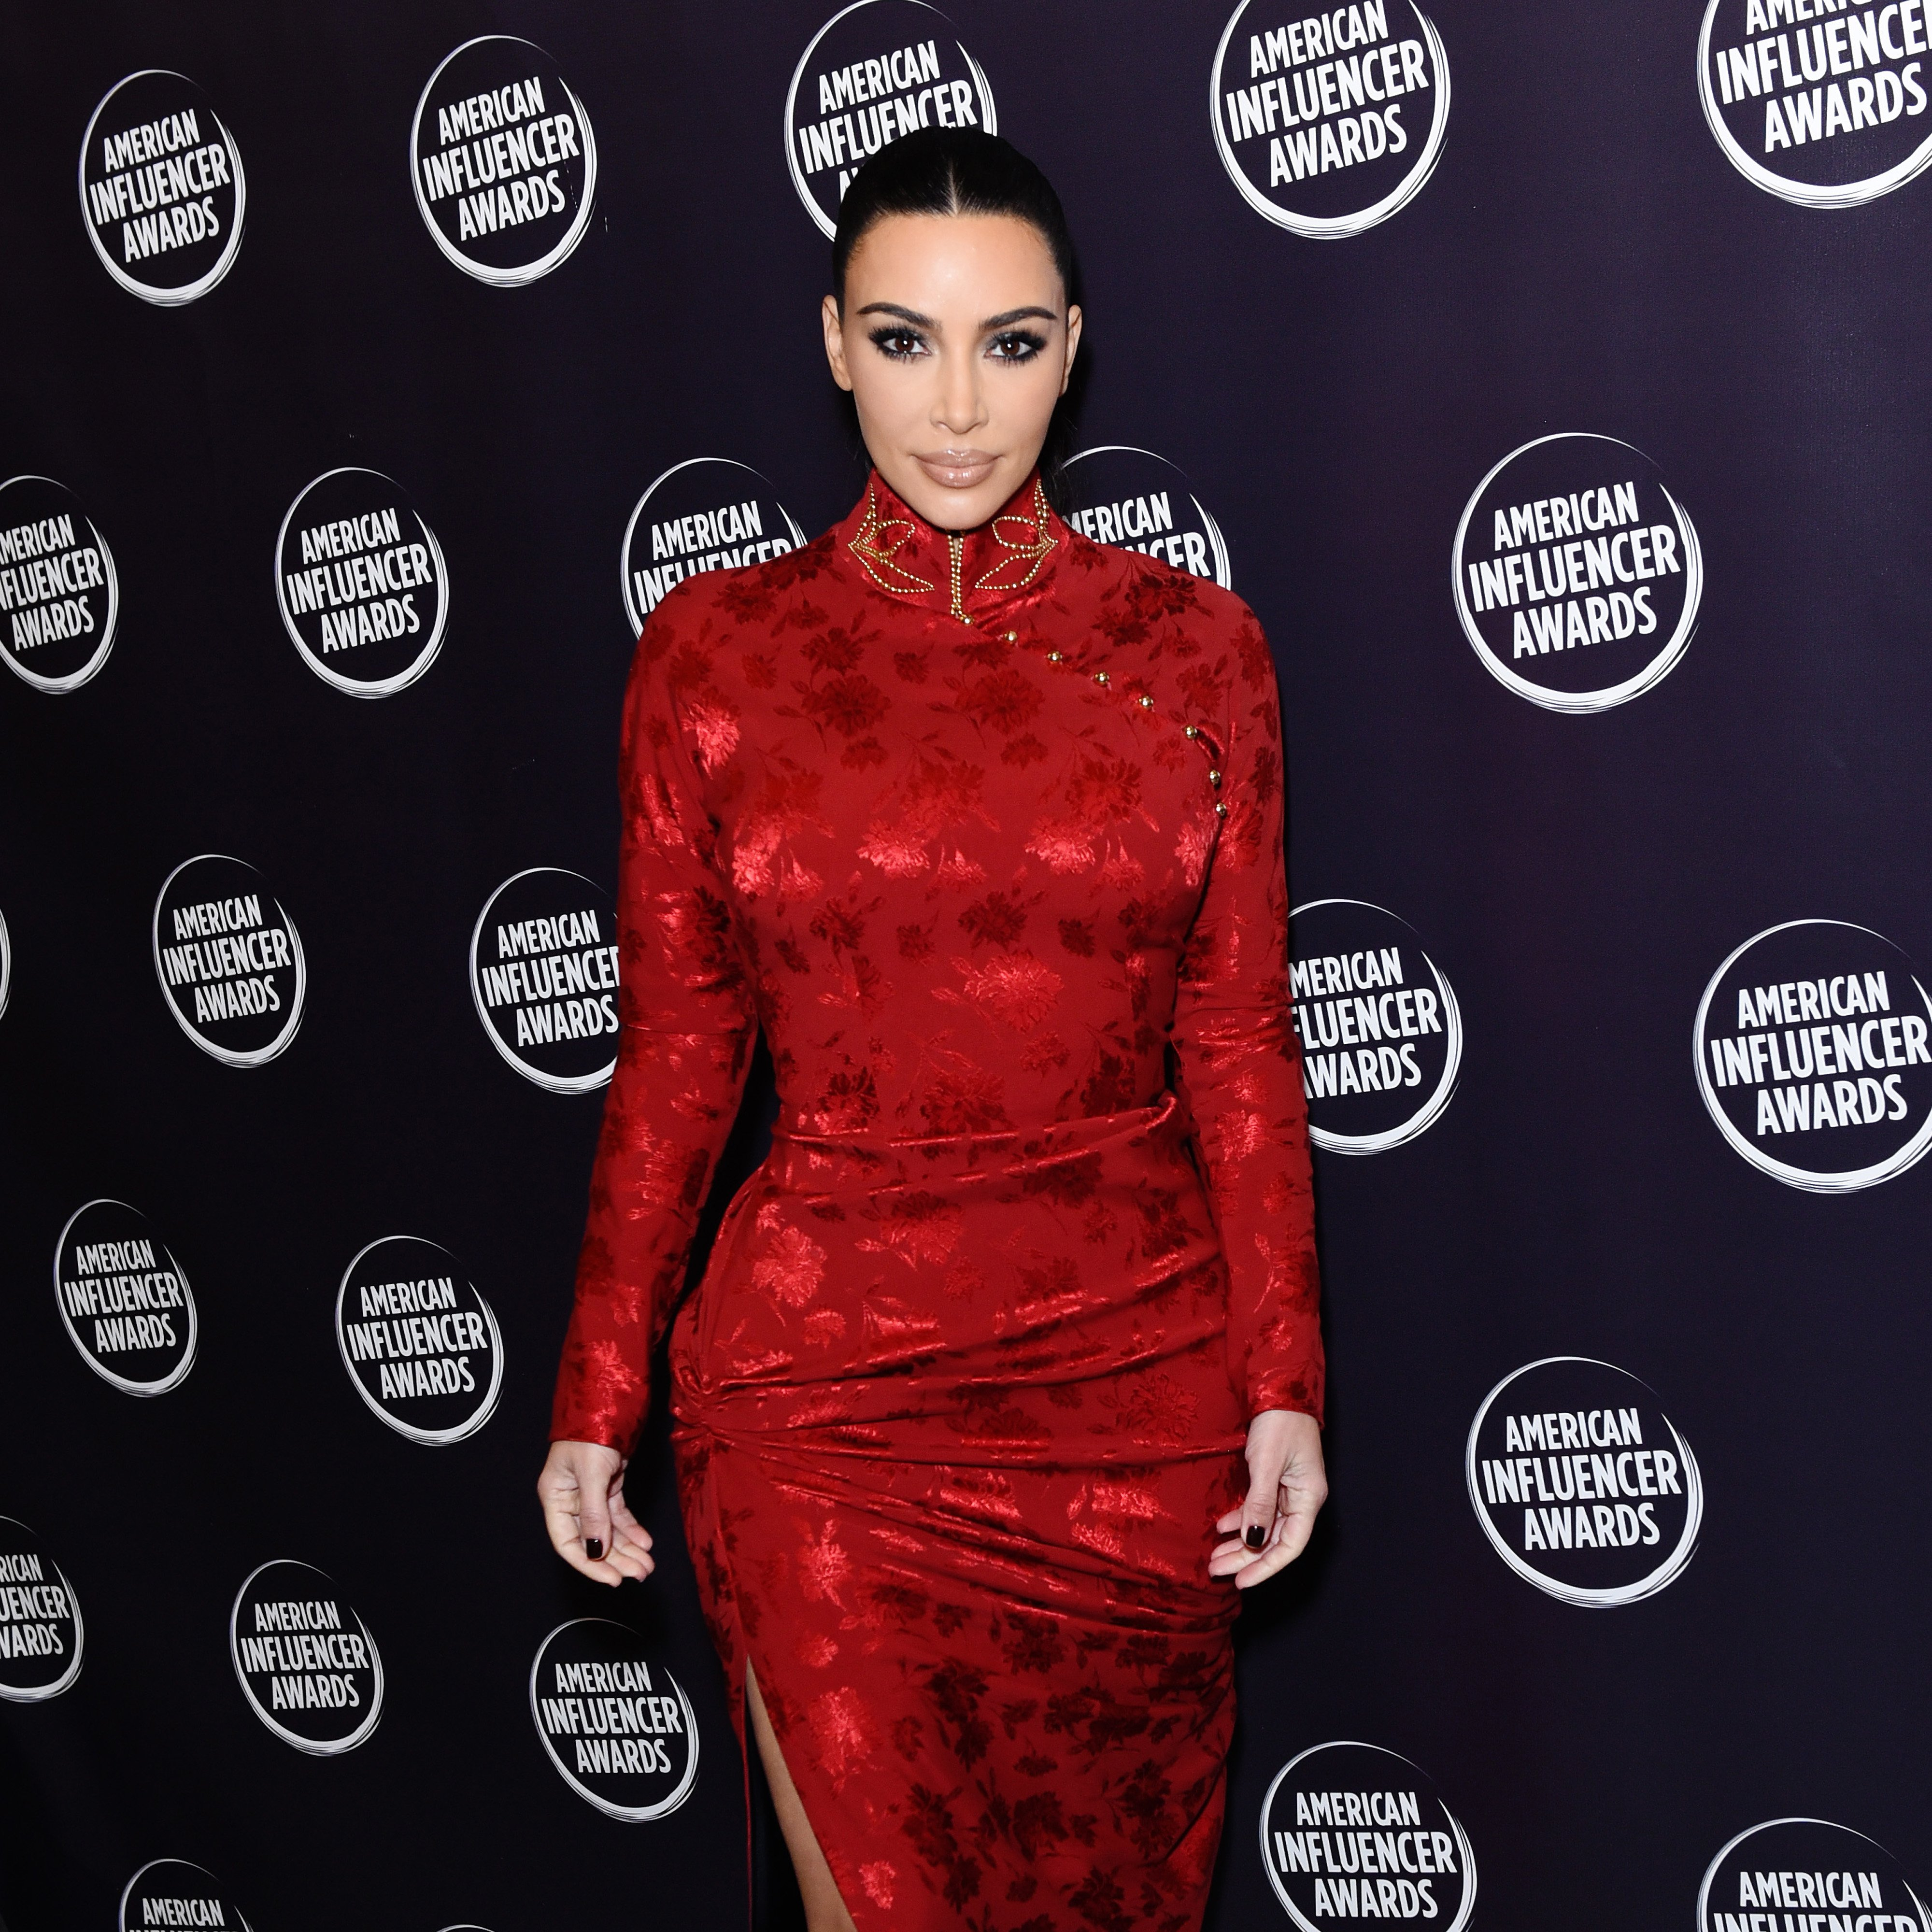 Kim Kardashian at the 2nd Annual American Influencer Awards | Source: Getty Images